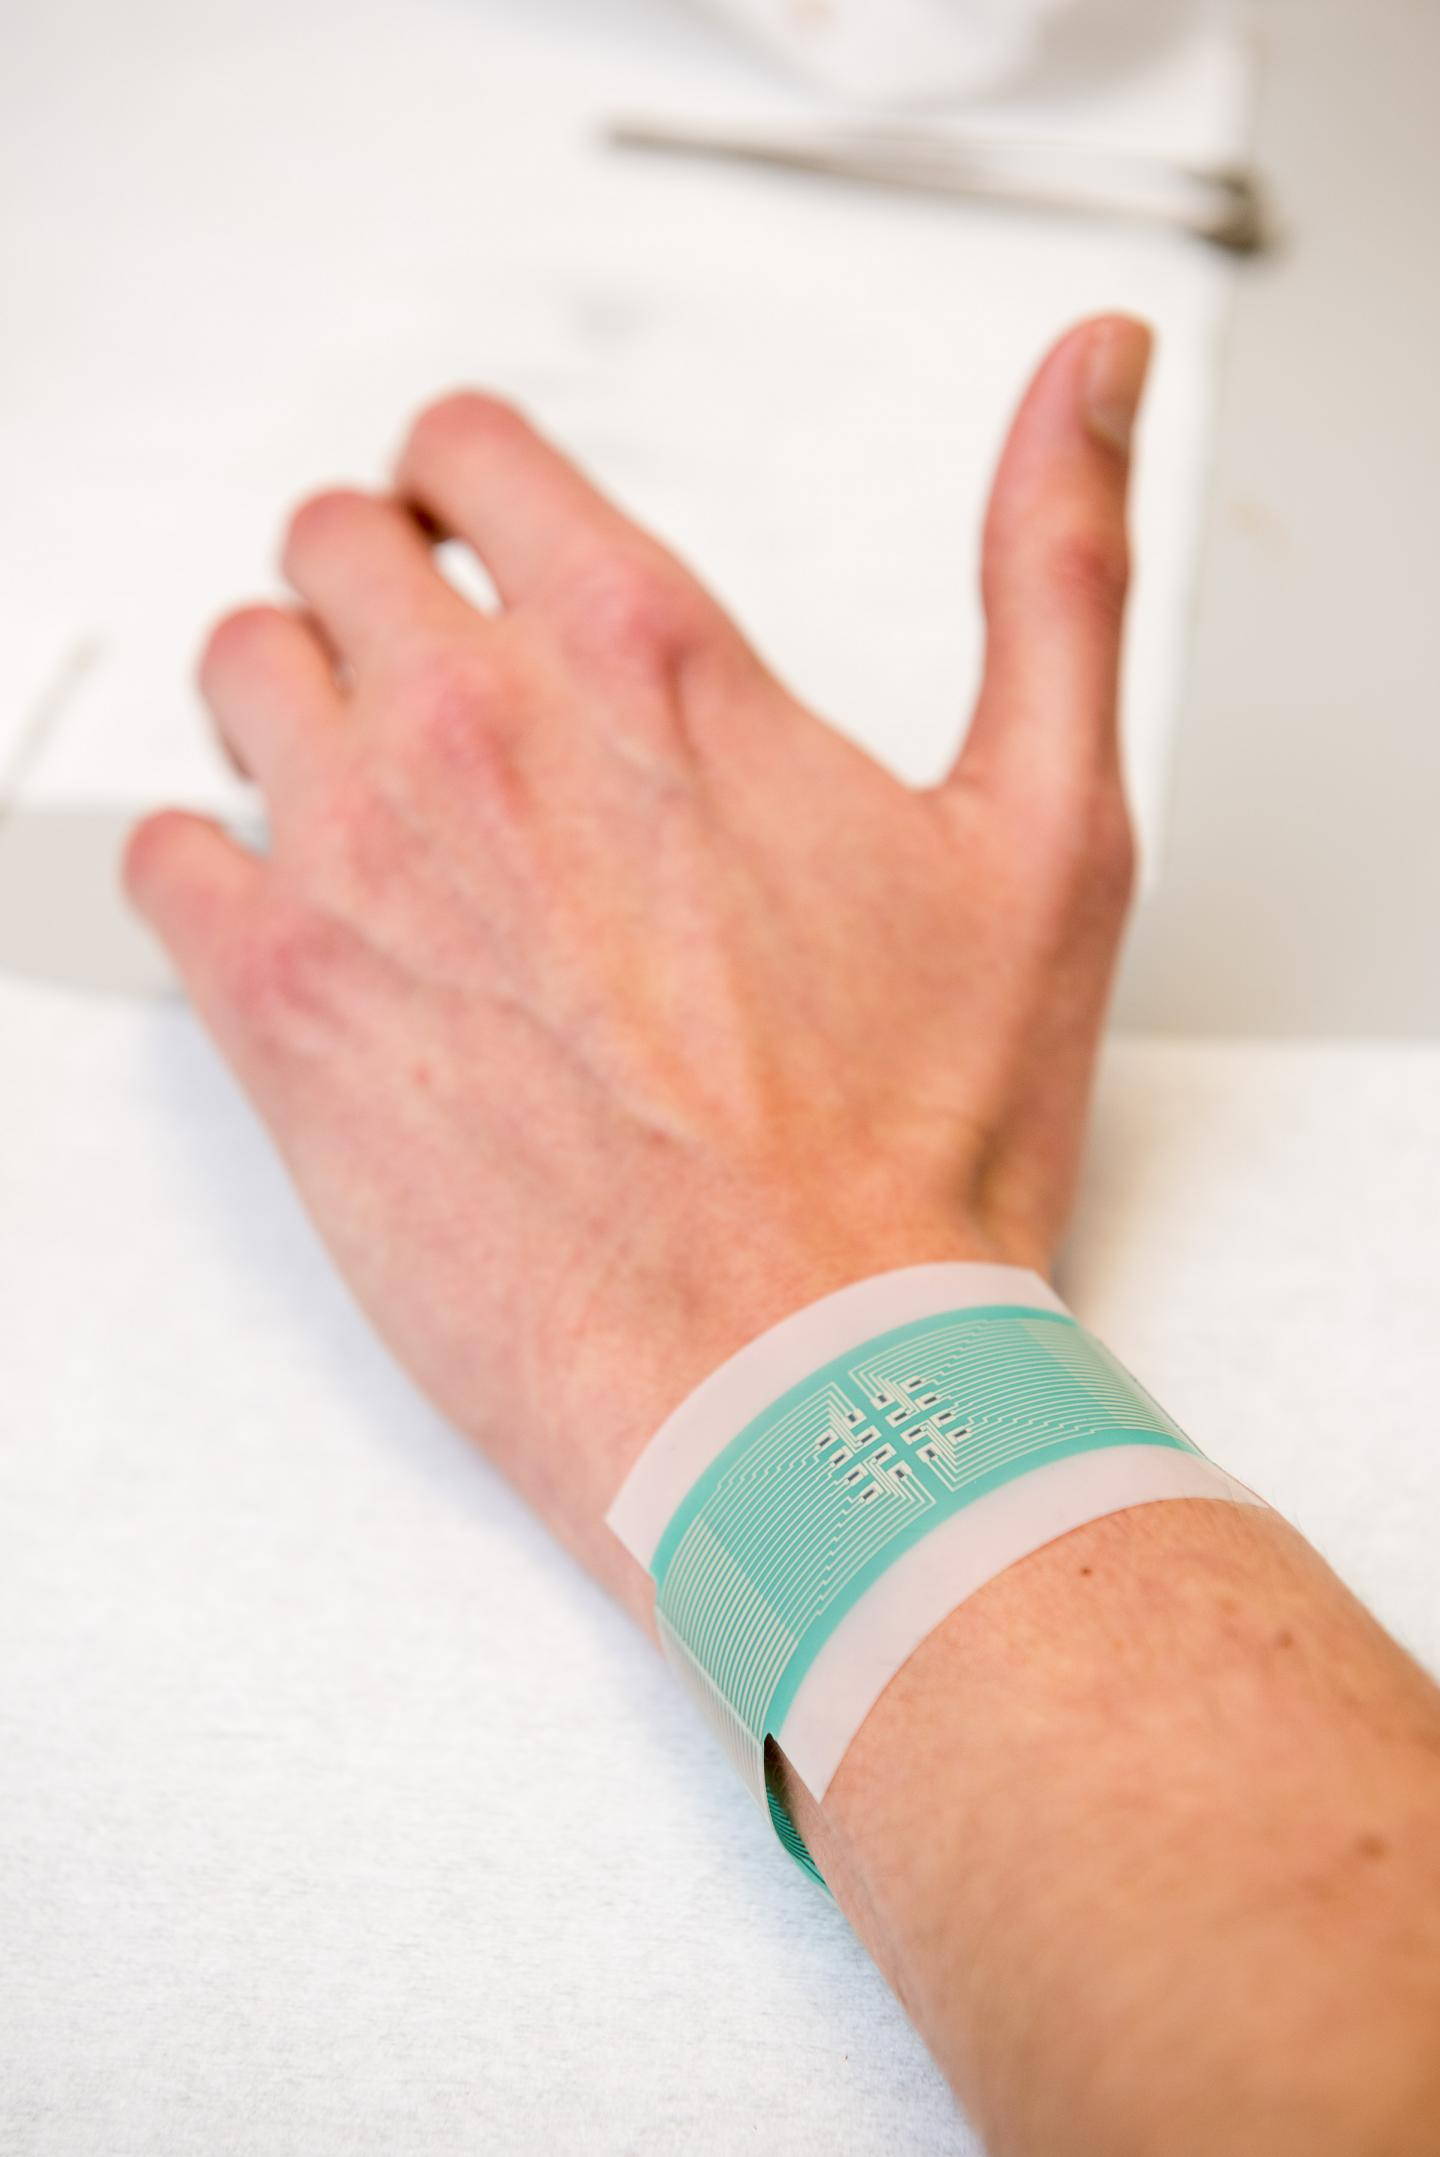 Bloodless Diabetes Monitor Patch